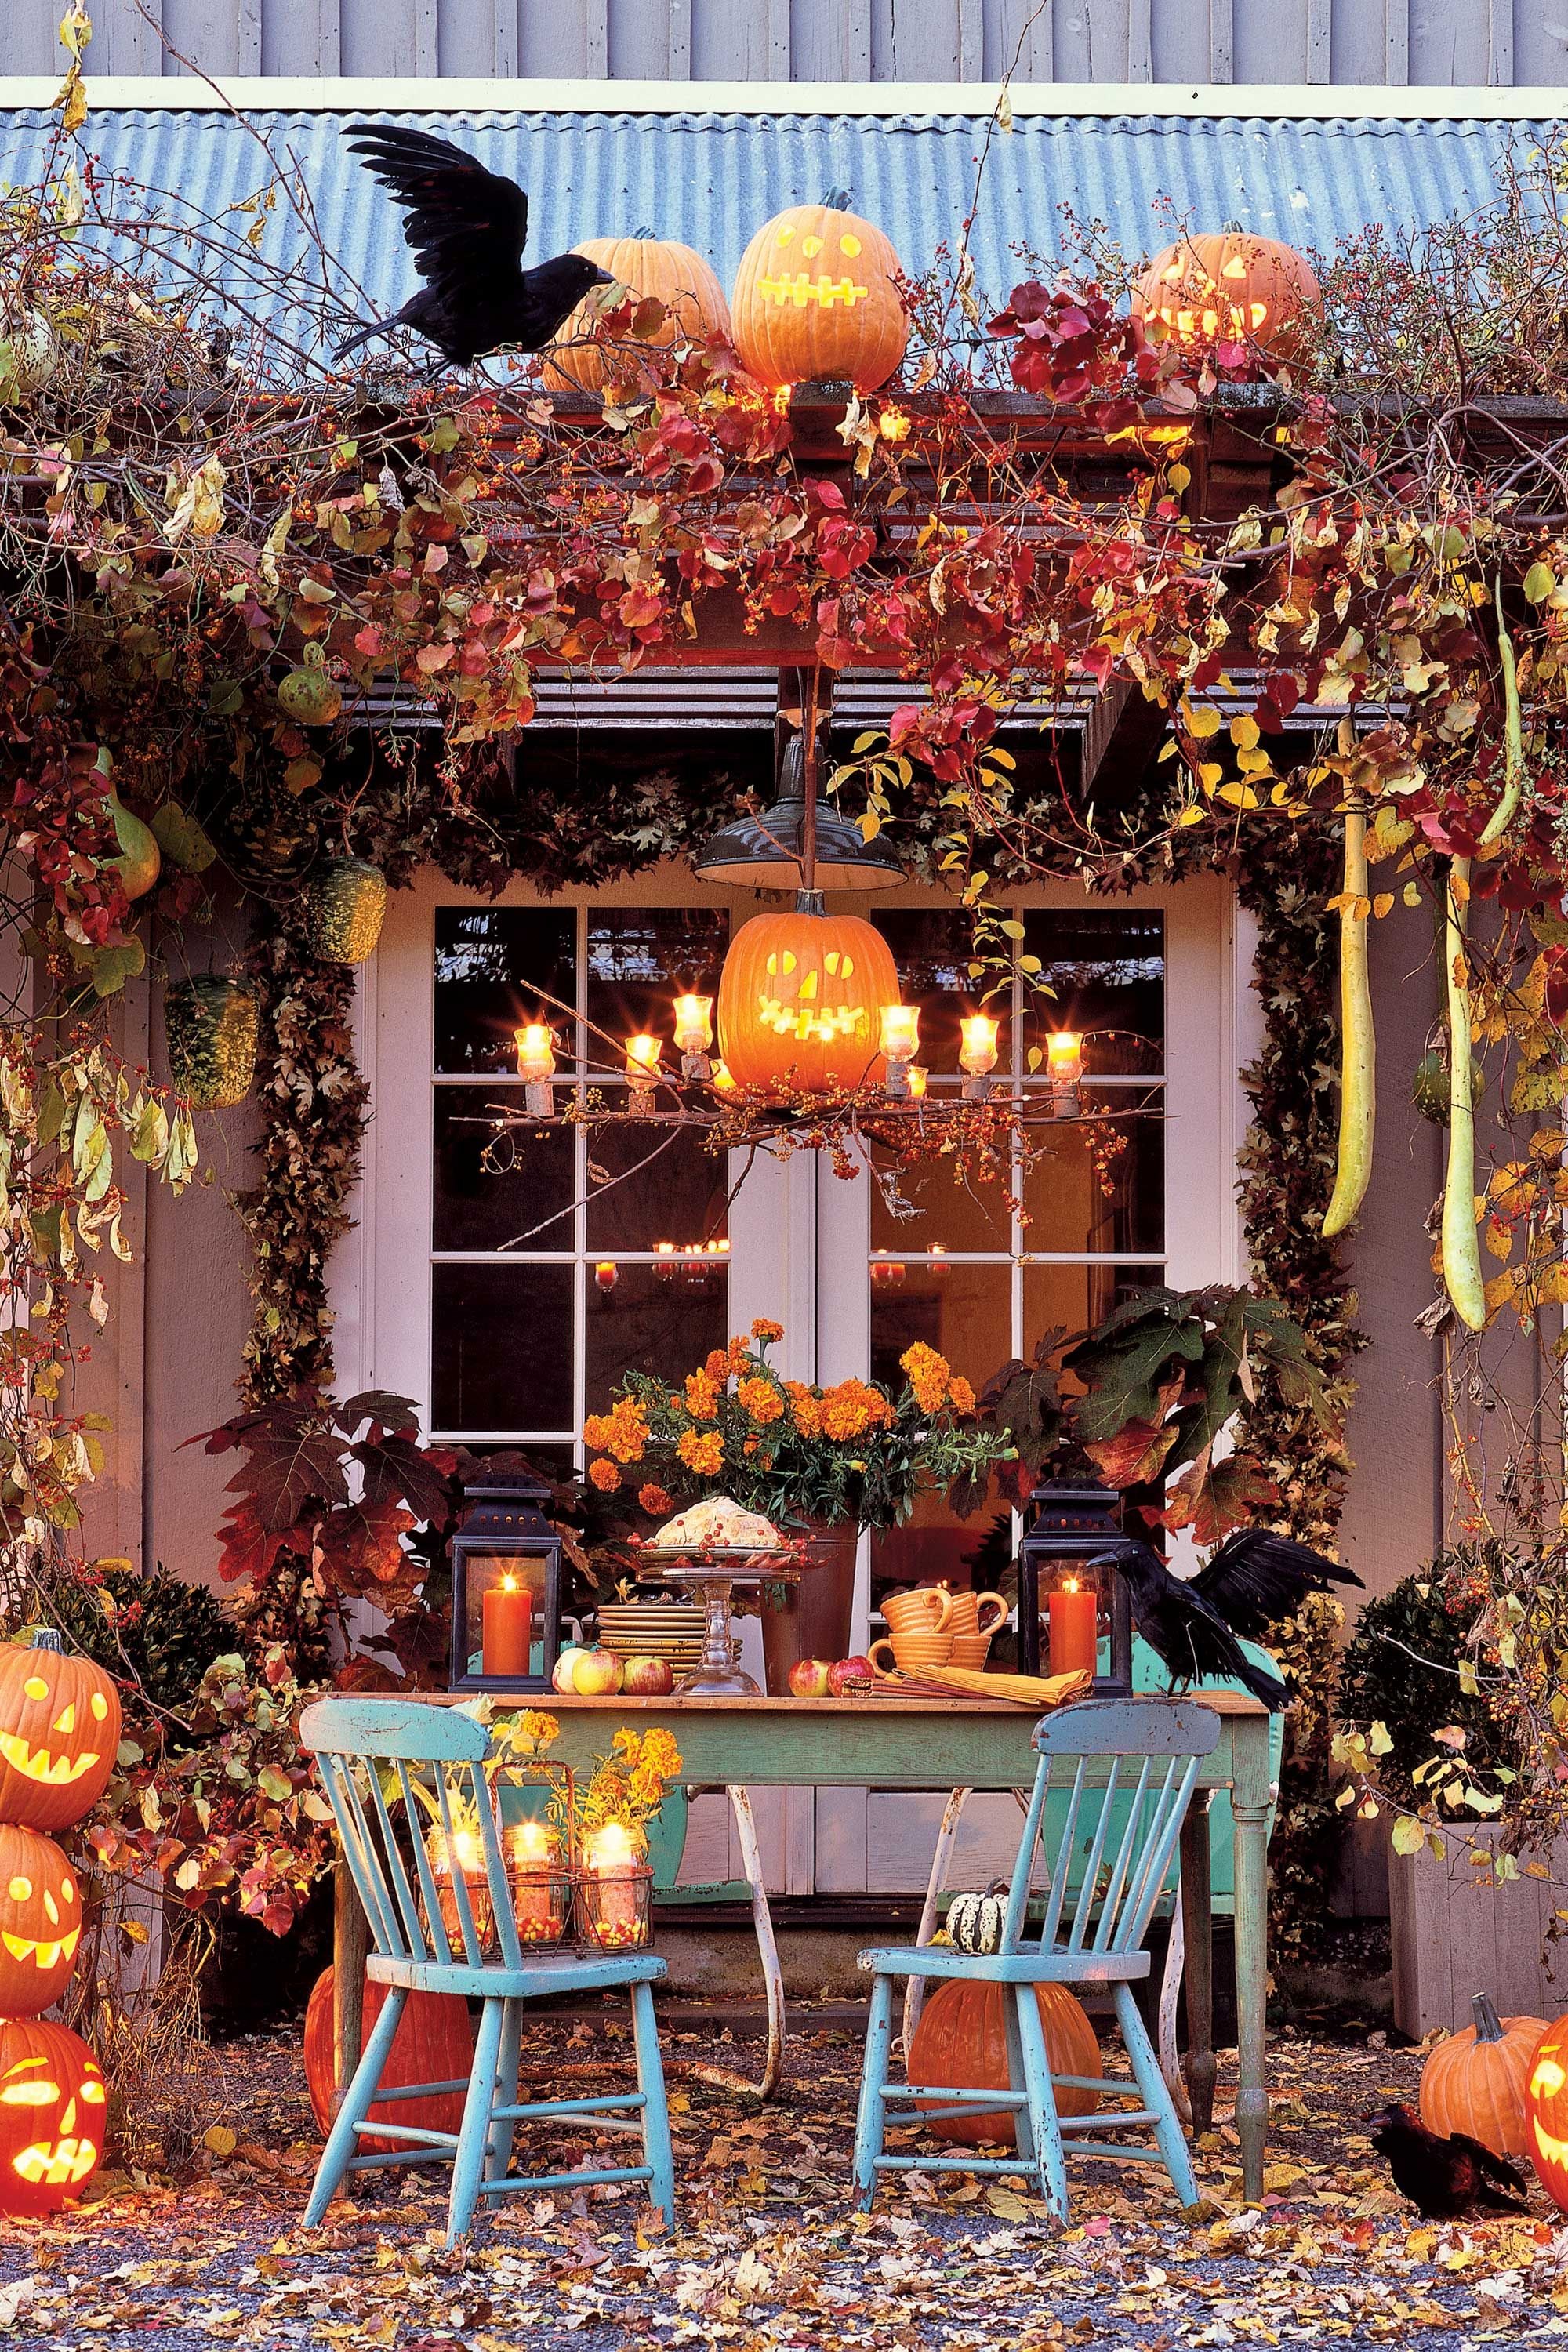 59 Best Outdoor Halloween Decorations to Spellbind Every Trick-or-Treater |  Halloween outdoor decorations, Fall outdoor decor, Halloween diy outdoor